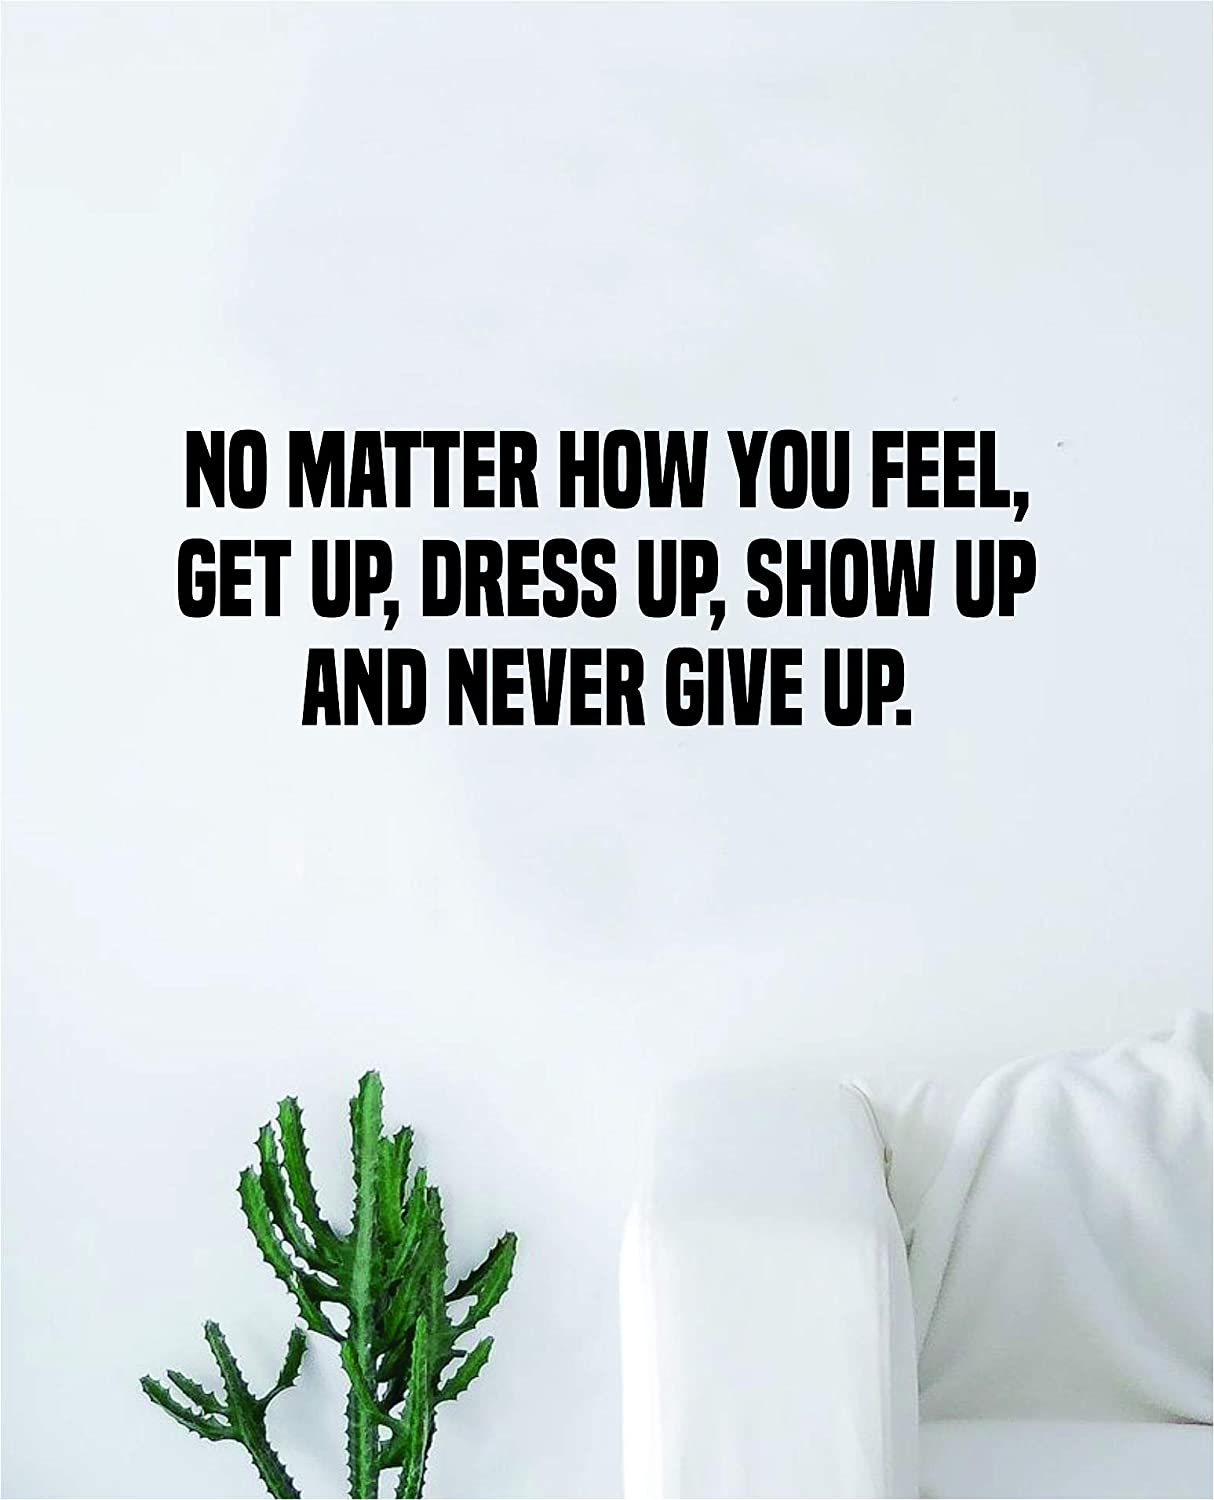 Show Up And Never Give Up Wall Decal Sticker Vinyl Art Bedroom Living Room Decor Nursery Playroom Teen Boy Girl Cool Inspirational Sports Gym Motivational Job Dreams Nursery Office Dress Up